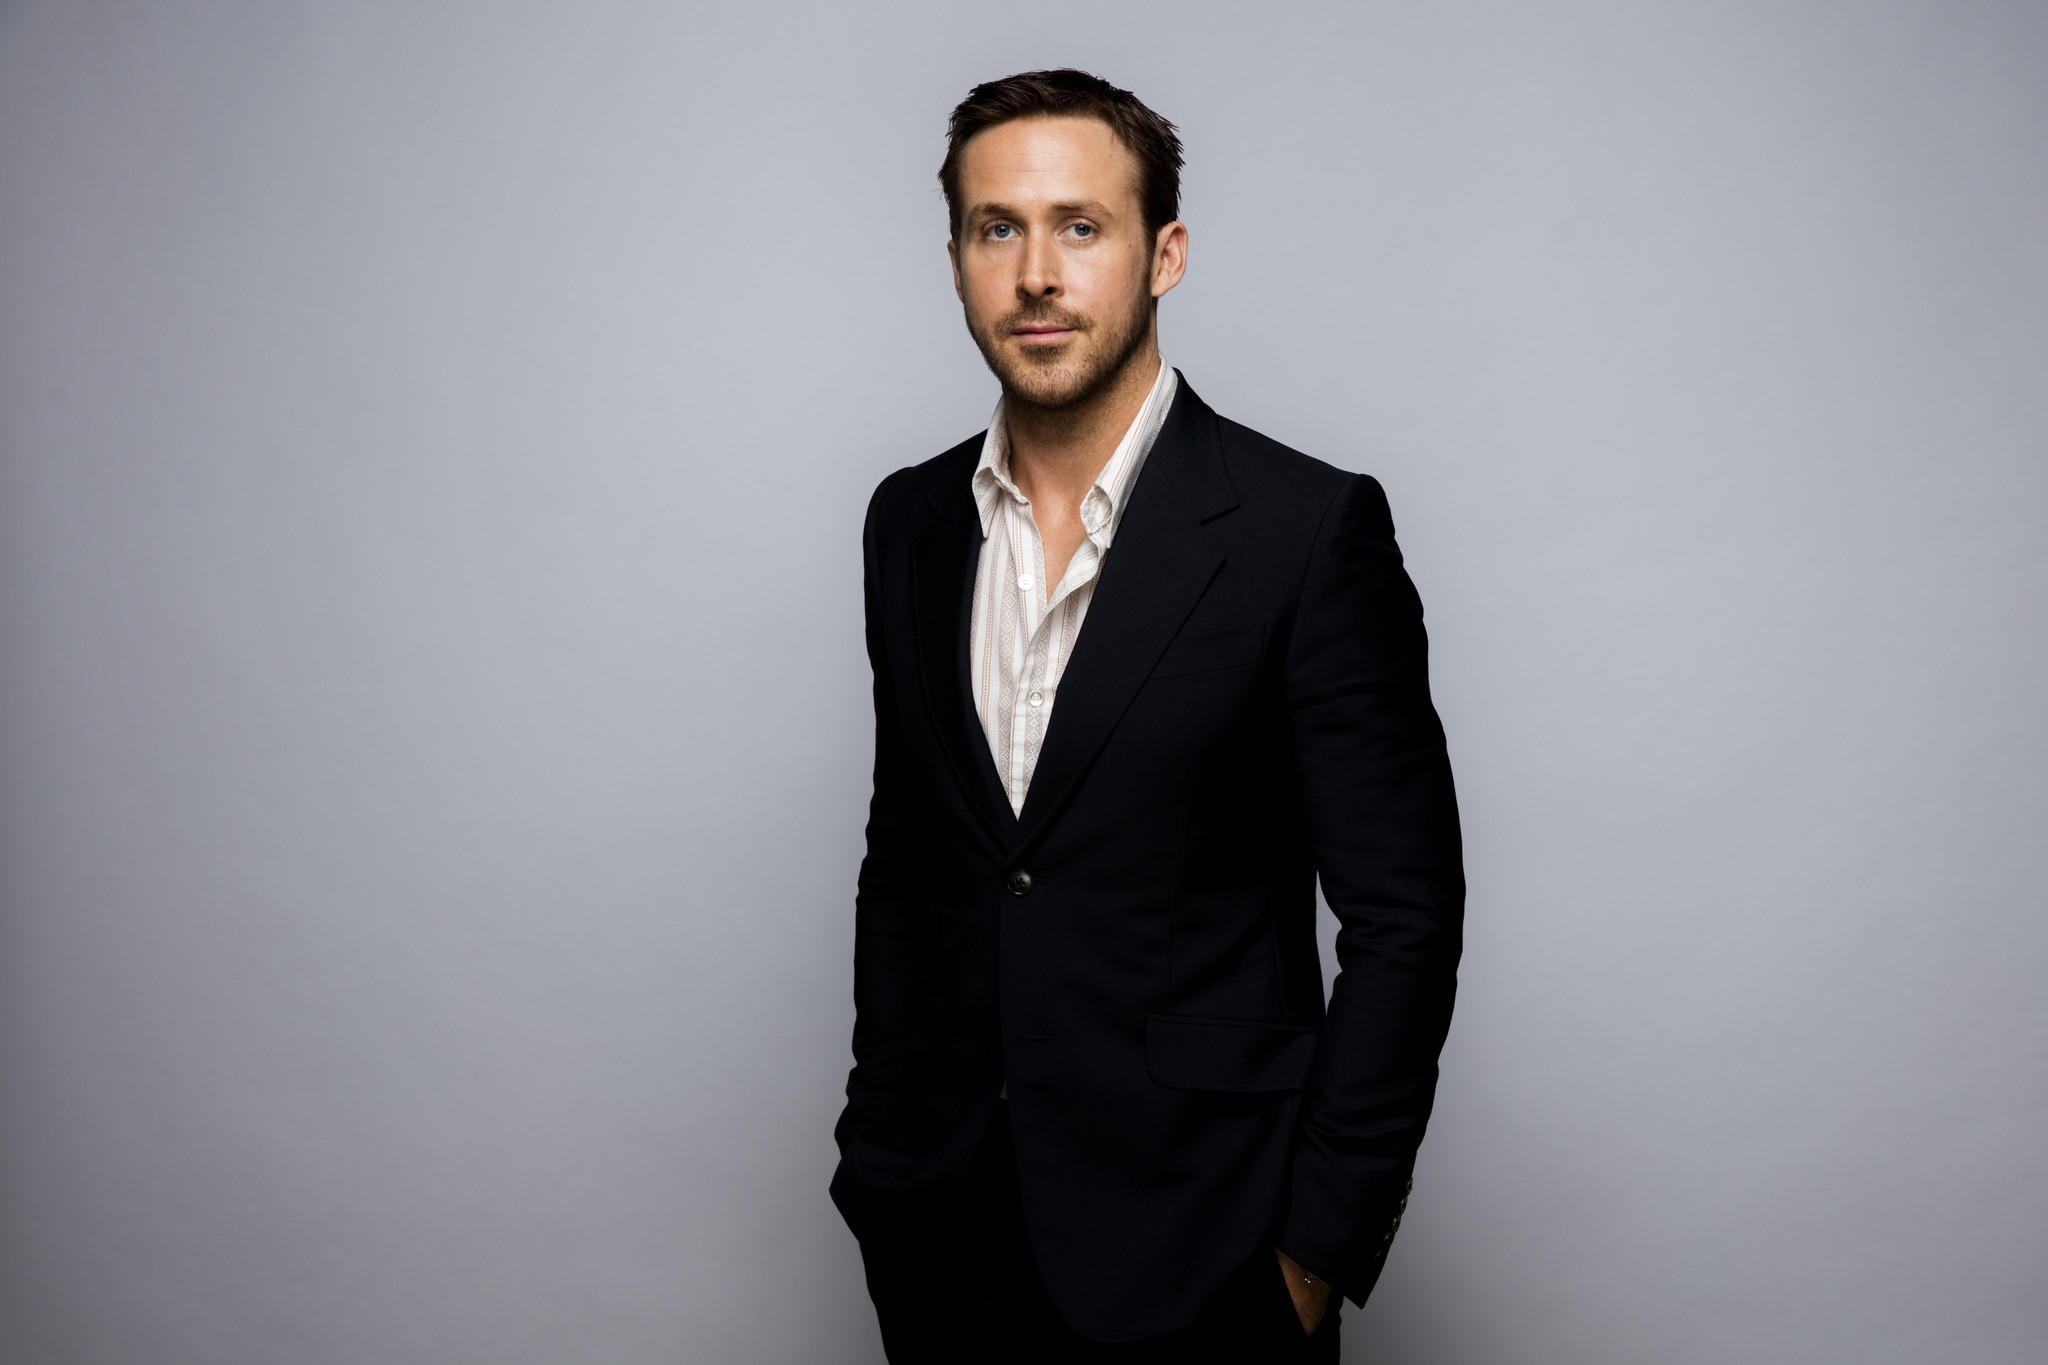 Ryan Gosling Wallpapers, Pictures, Images